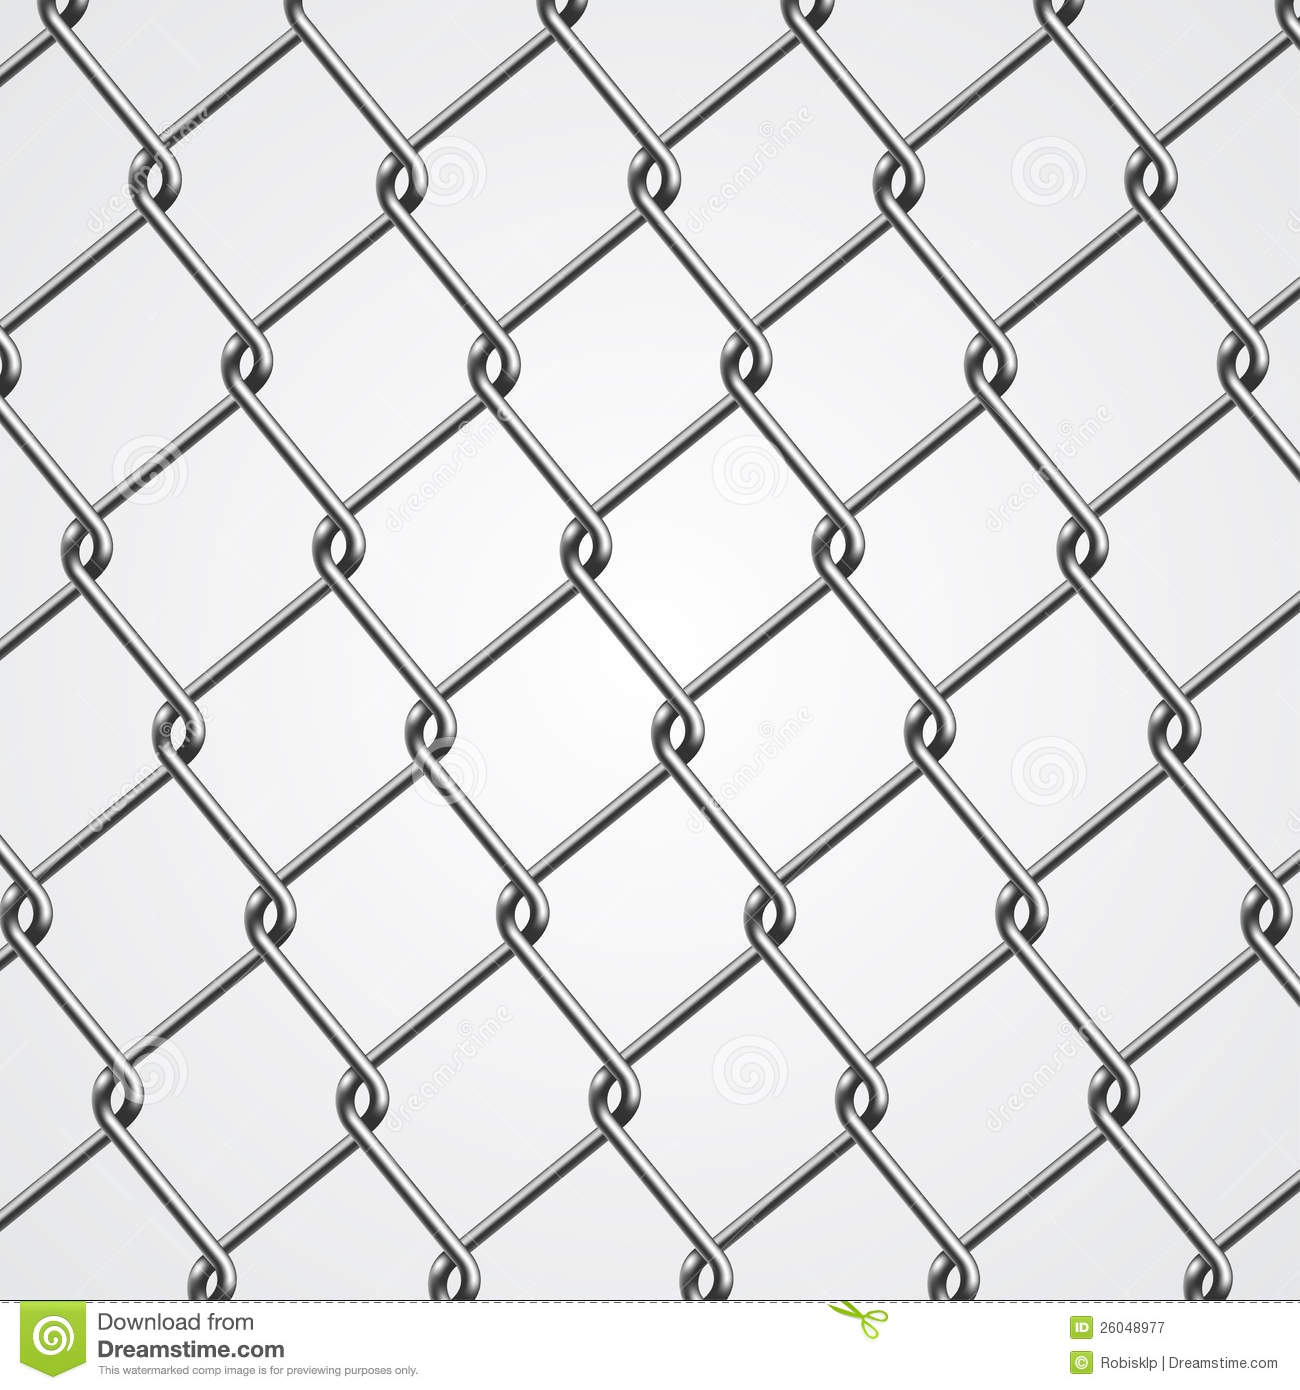 Image Result For Fence Styles